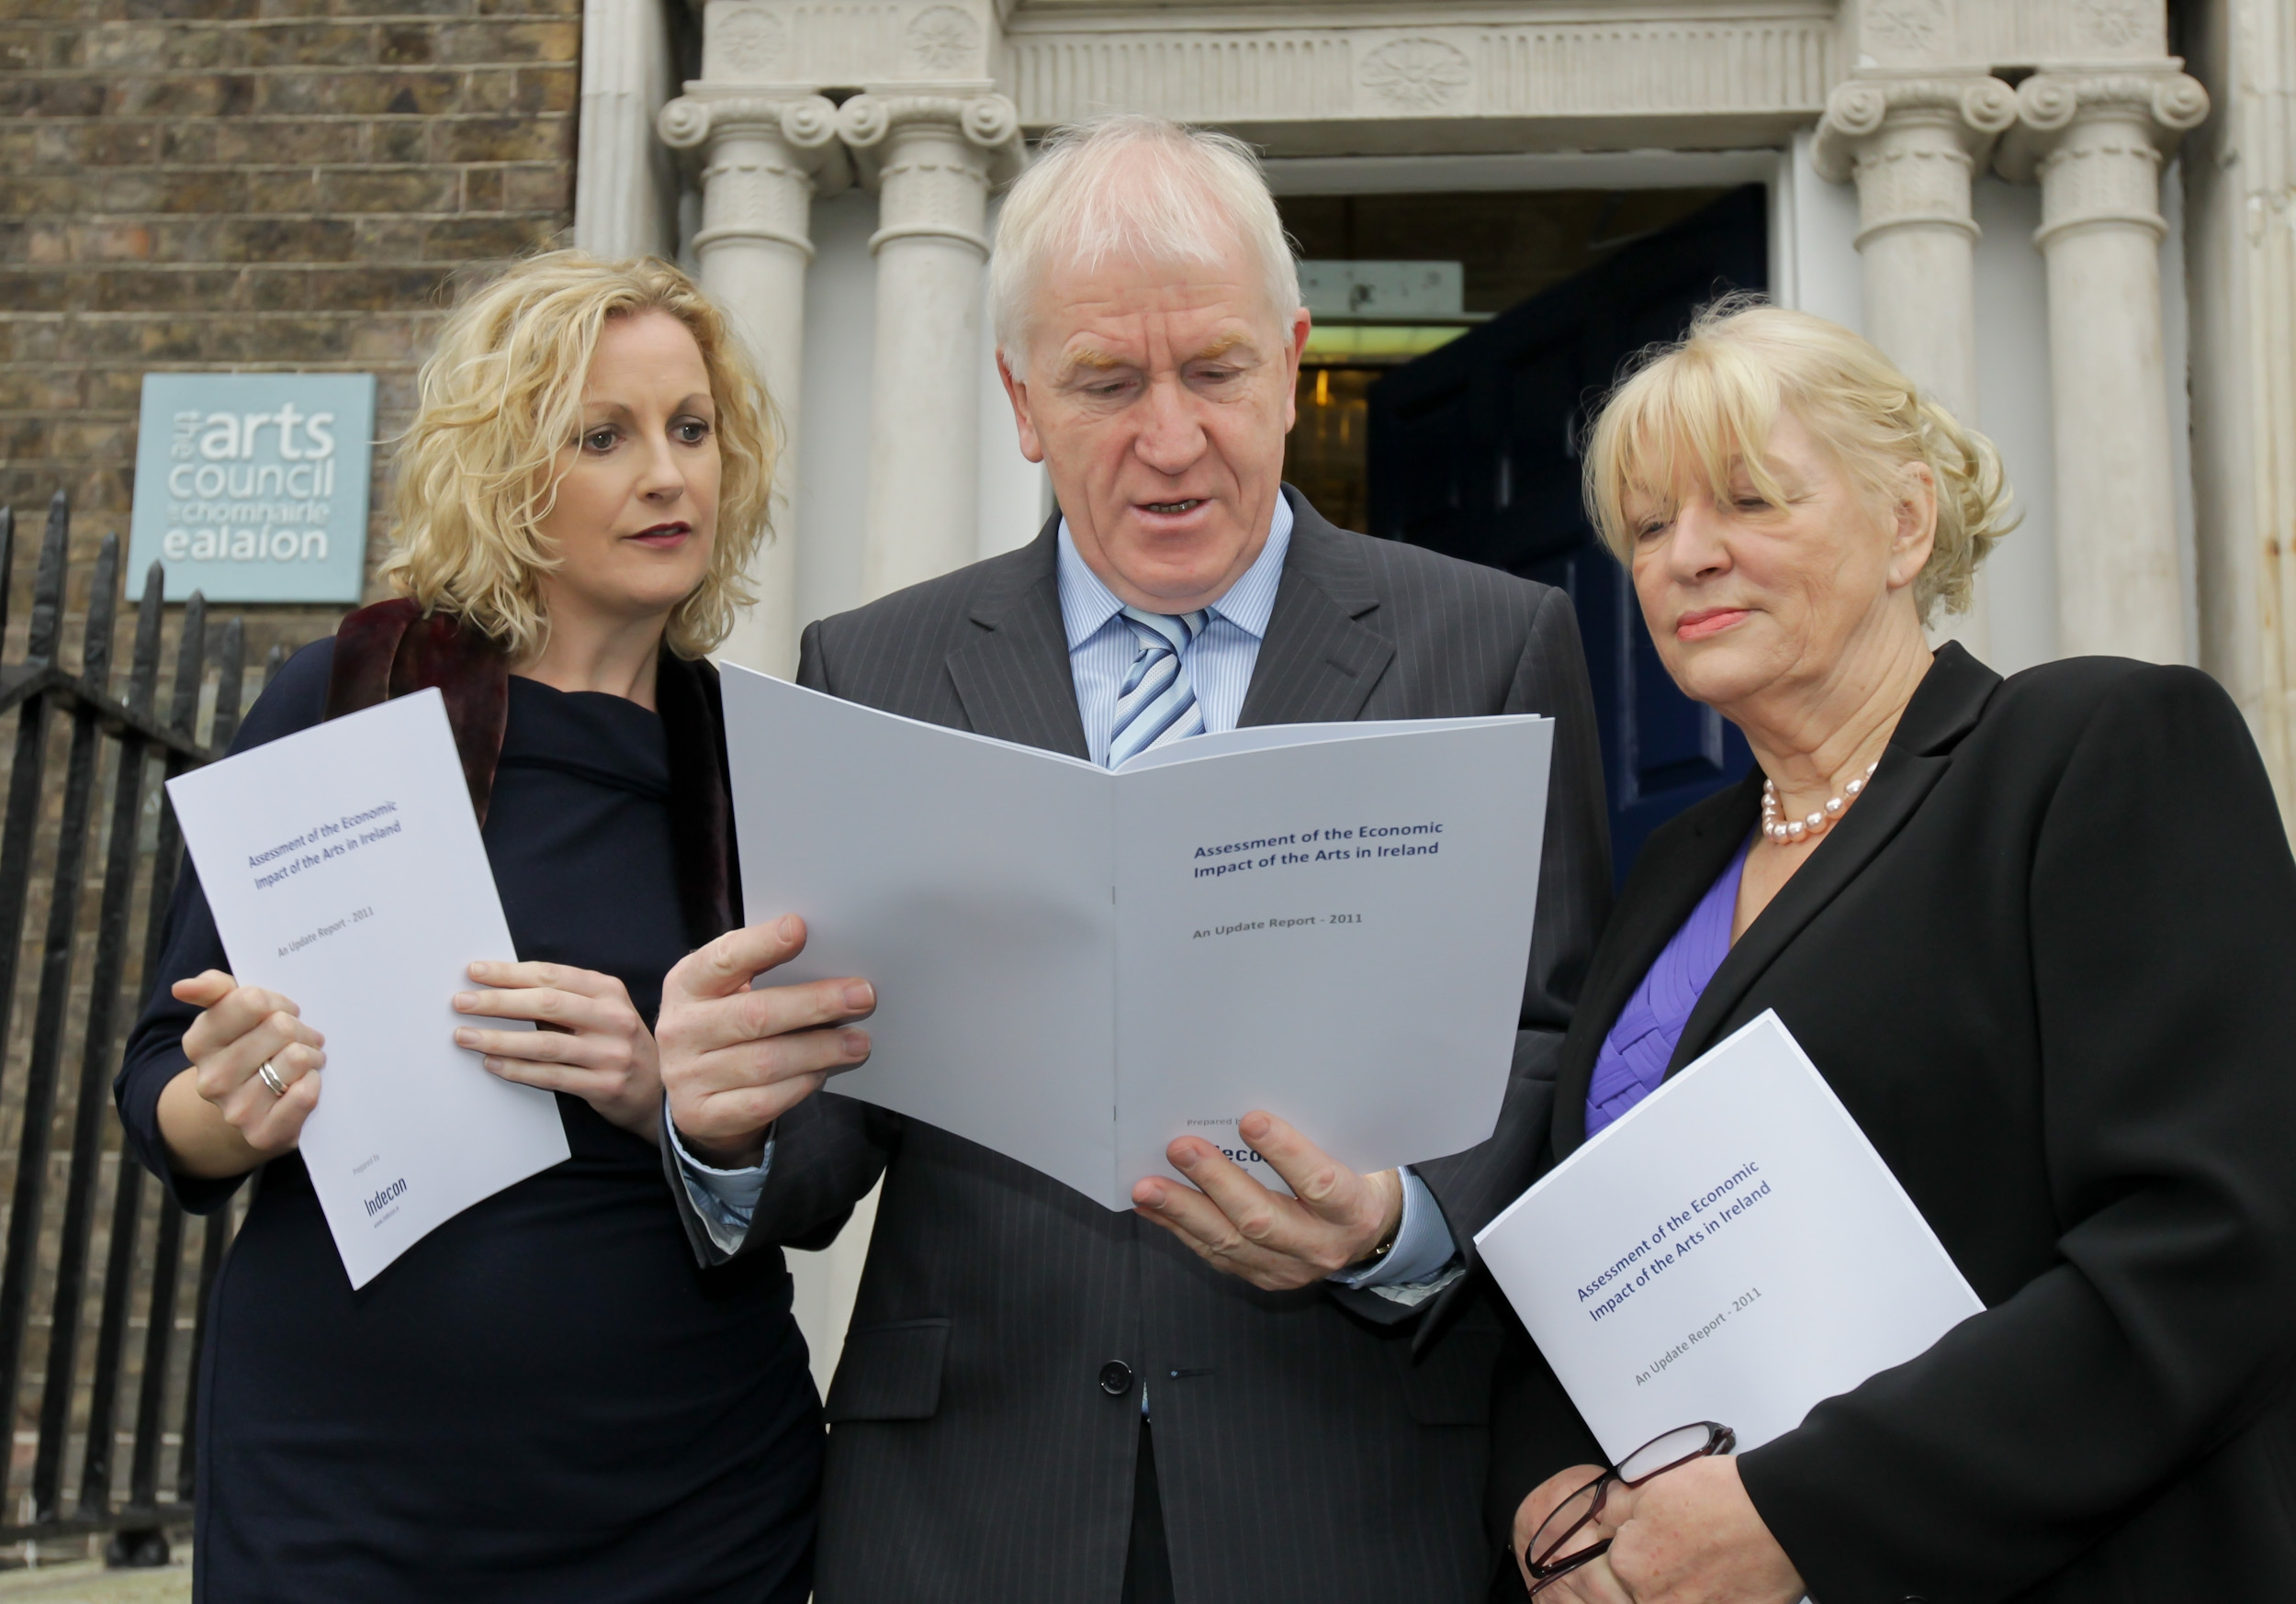 Pictured left to right at the launch of the new Indecon report are: Orlaith McBride, Director, Arts Council, Minister Jimmy Deenihan TD and Pat Moylan, Chairman, Arts Council.